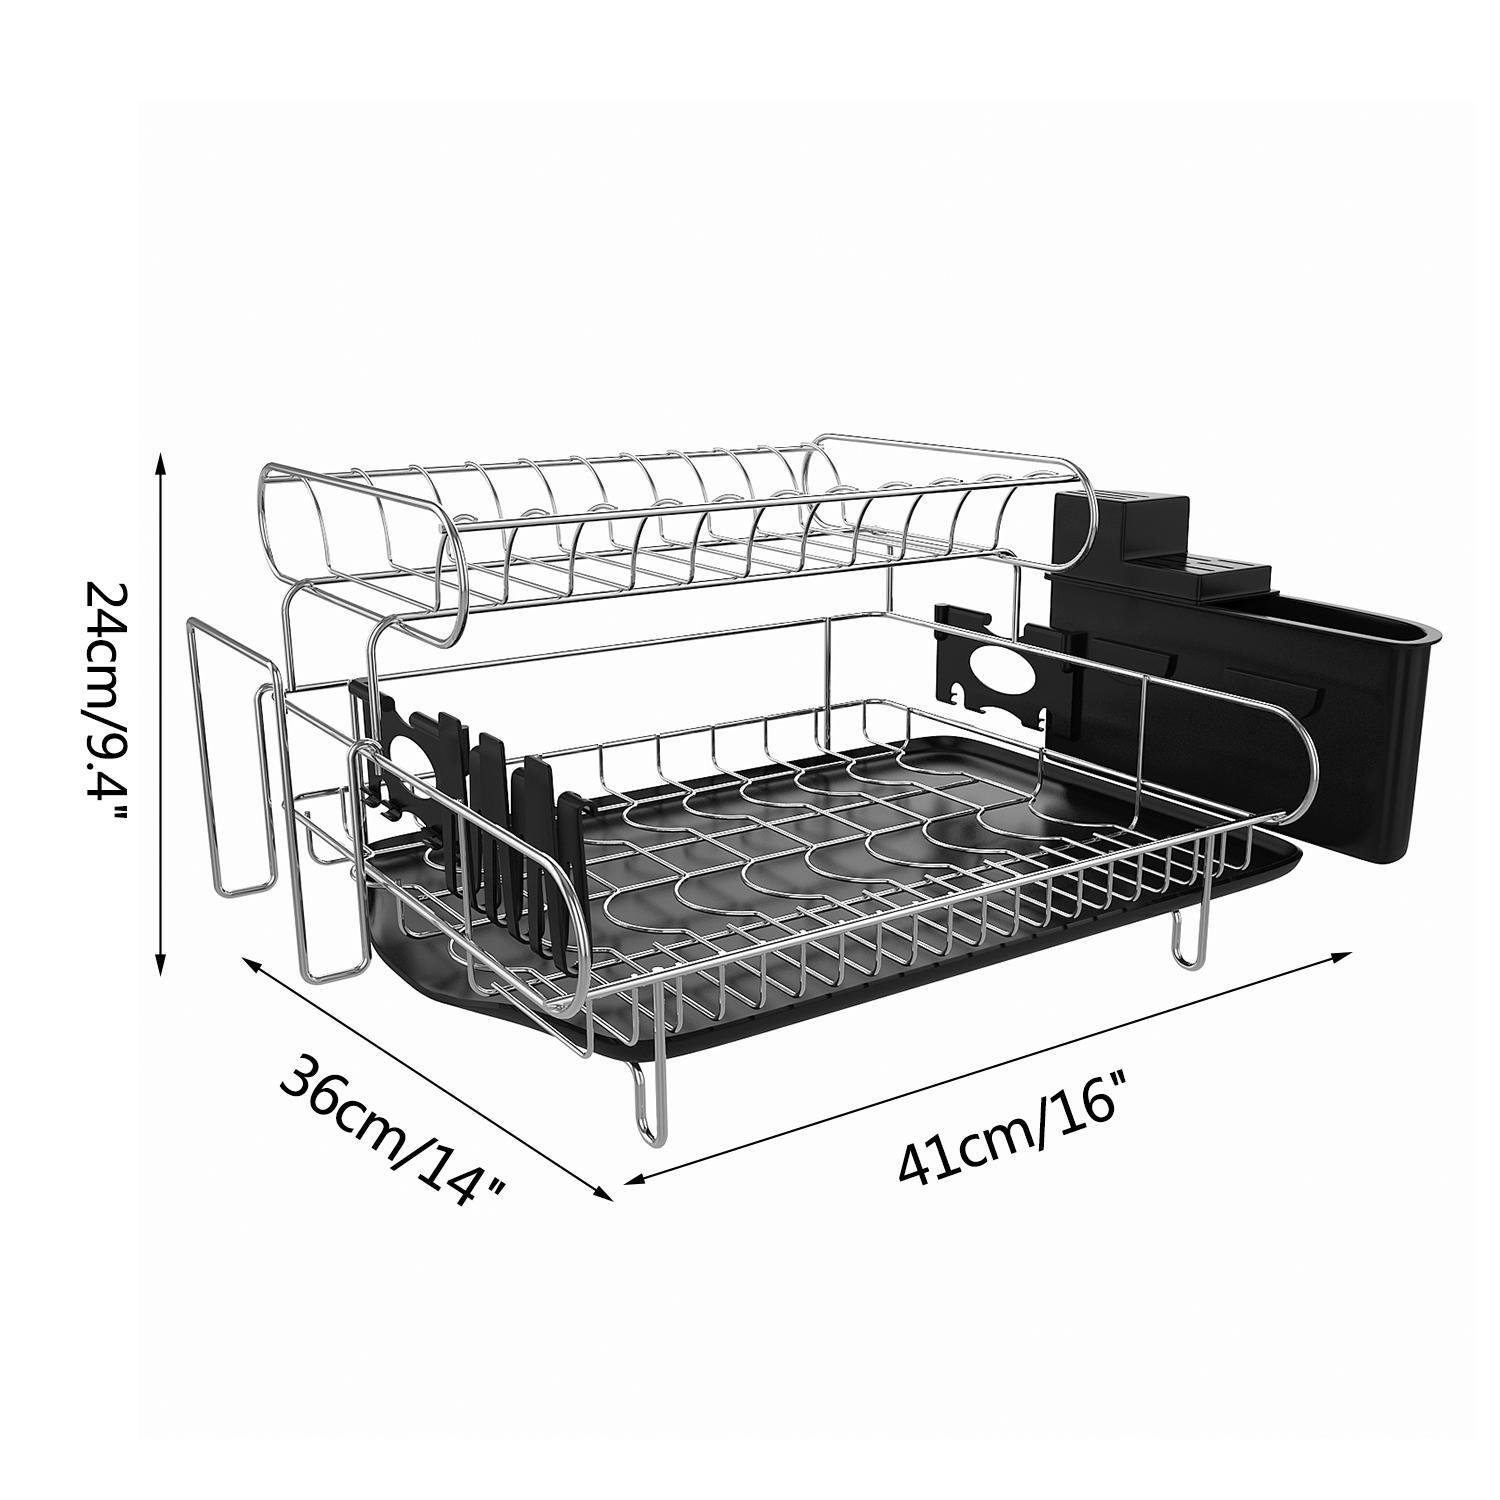 Mewalker 2 Tier Dish Drying Rack 304 Stainless Steel Professional Dish Rack with Microfiber Mat Drain Board and Cutlery Holder, Black by Mewalker (Image #8)